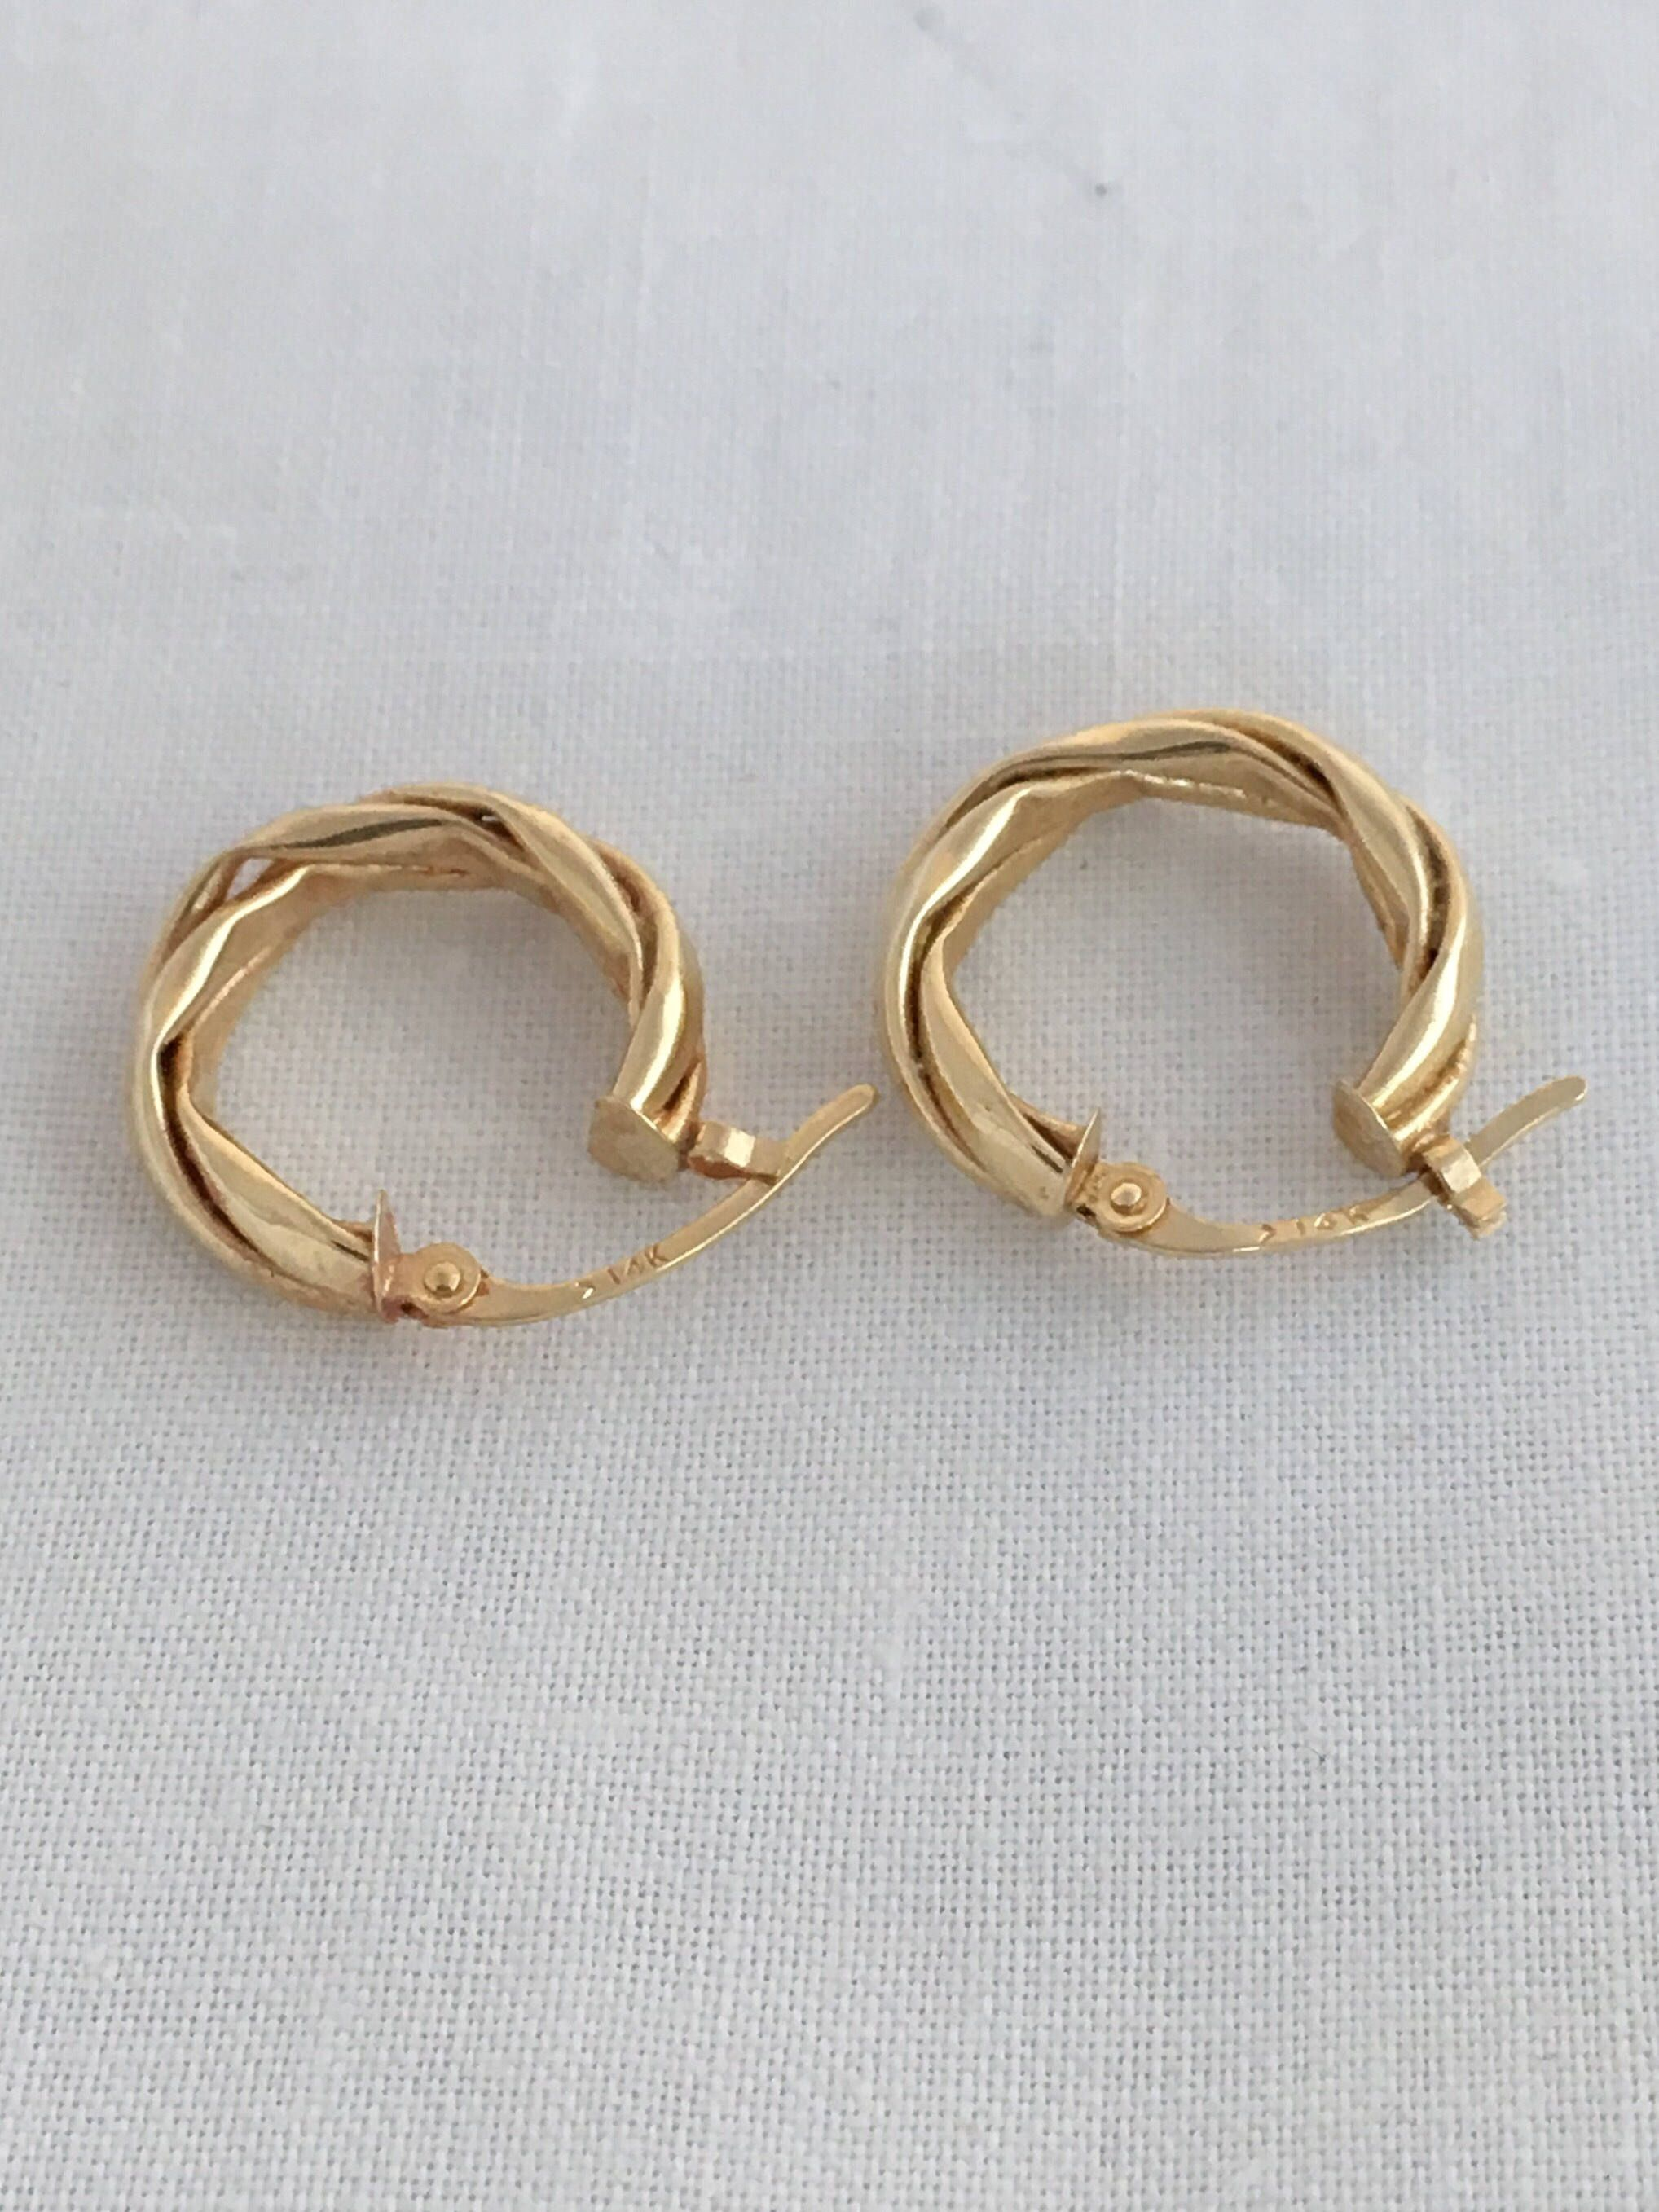 ea1932d5a Excited to share the latest addition to my #etsy shop: Stunning 14K Gold  585 Hoop Tubolar Earrings Torsade Twist Design Hallmark